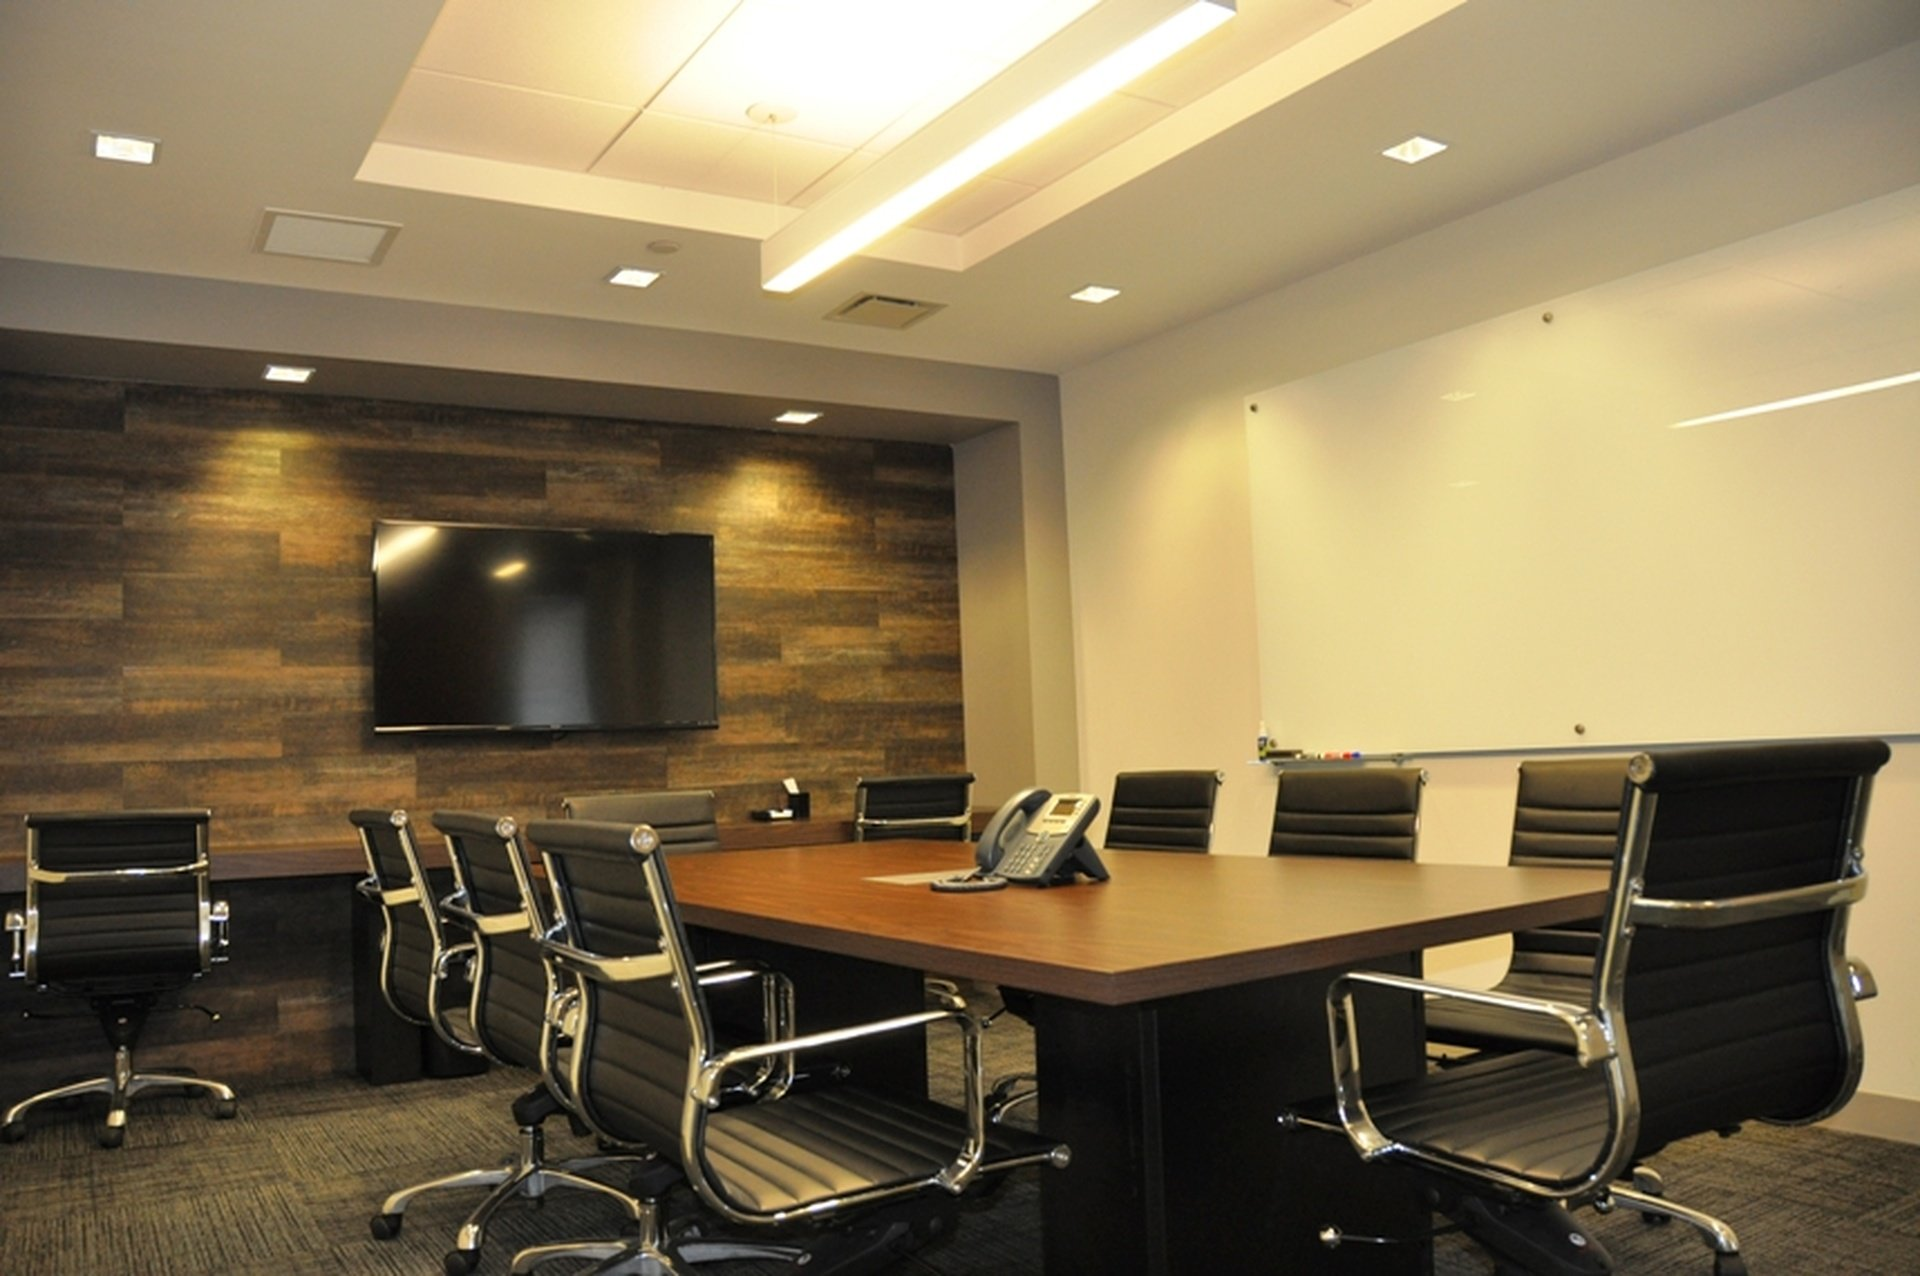 NYC conference rooms Salle de réunion Corporate Suites Conference Room 20B image 0